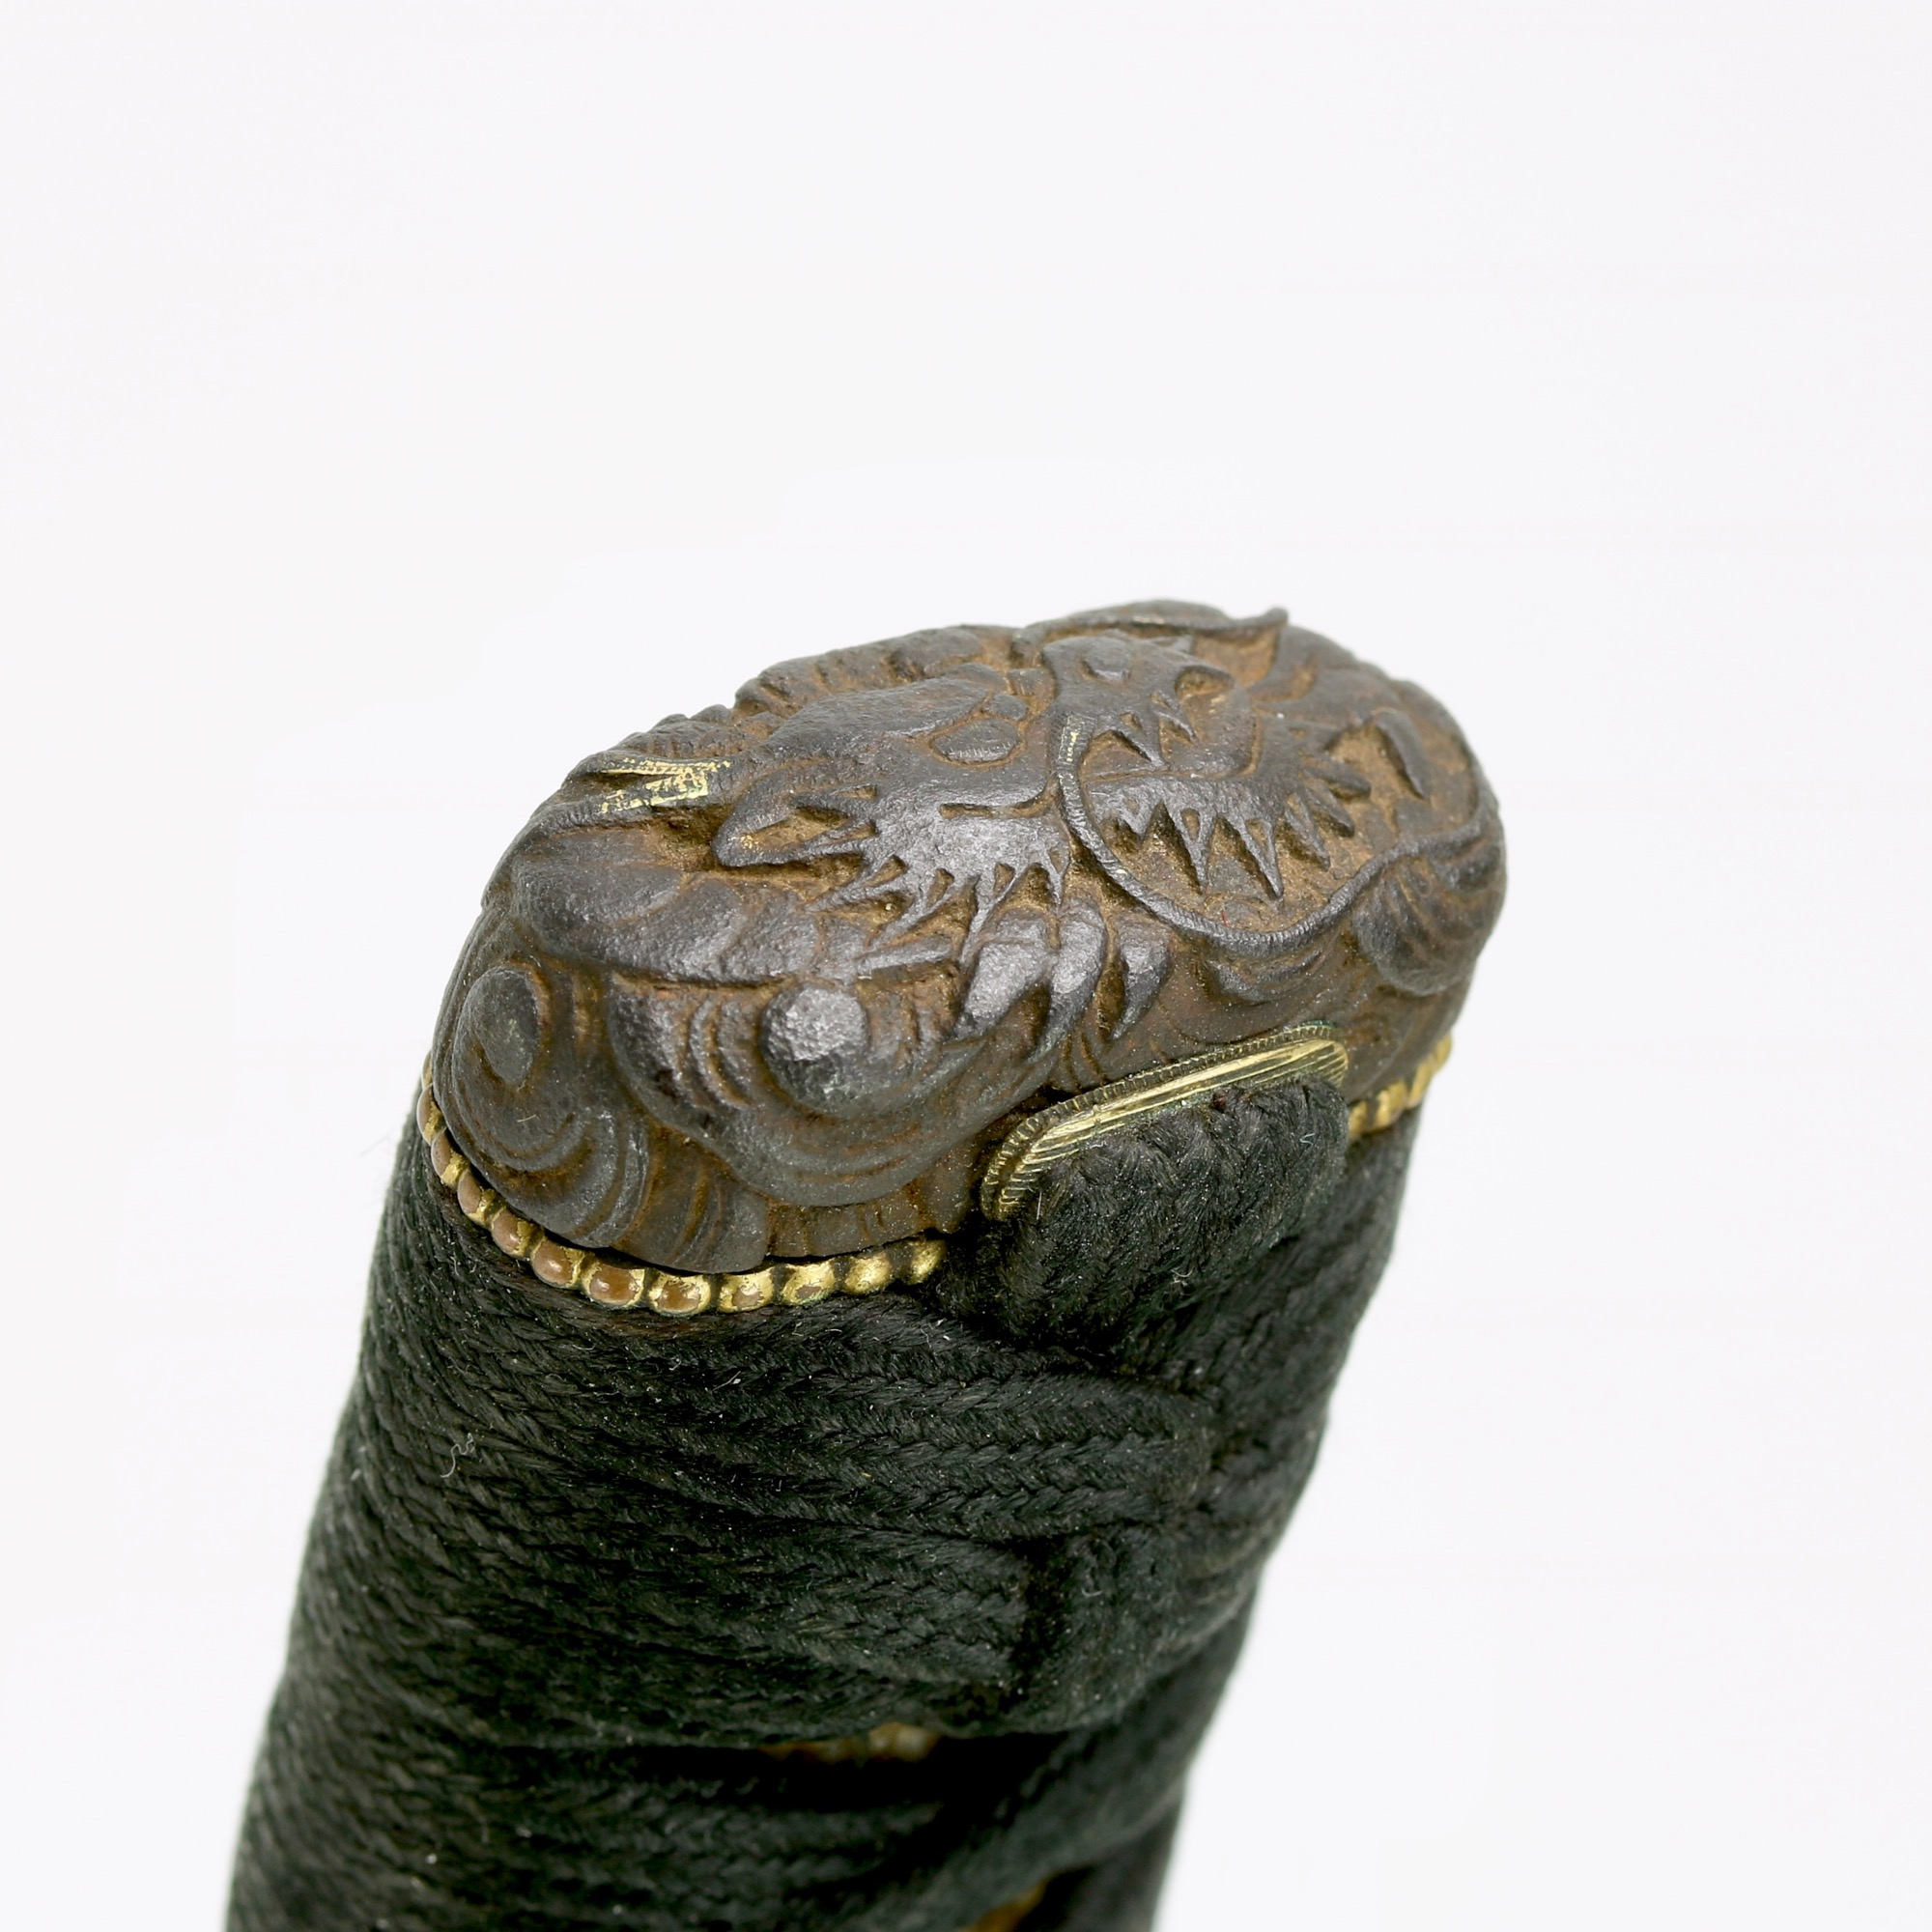 A Japanese set of sword fittings, koshirae, in nanban style